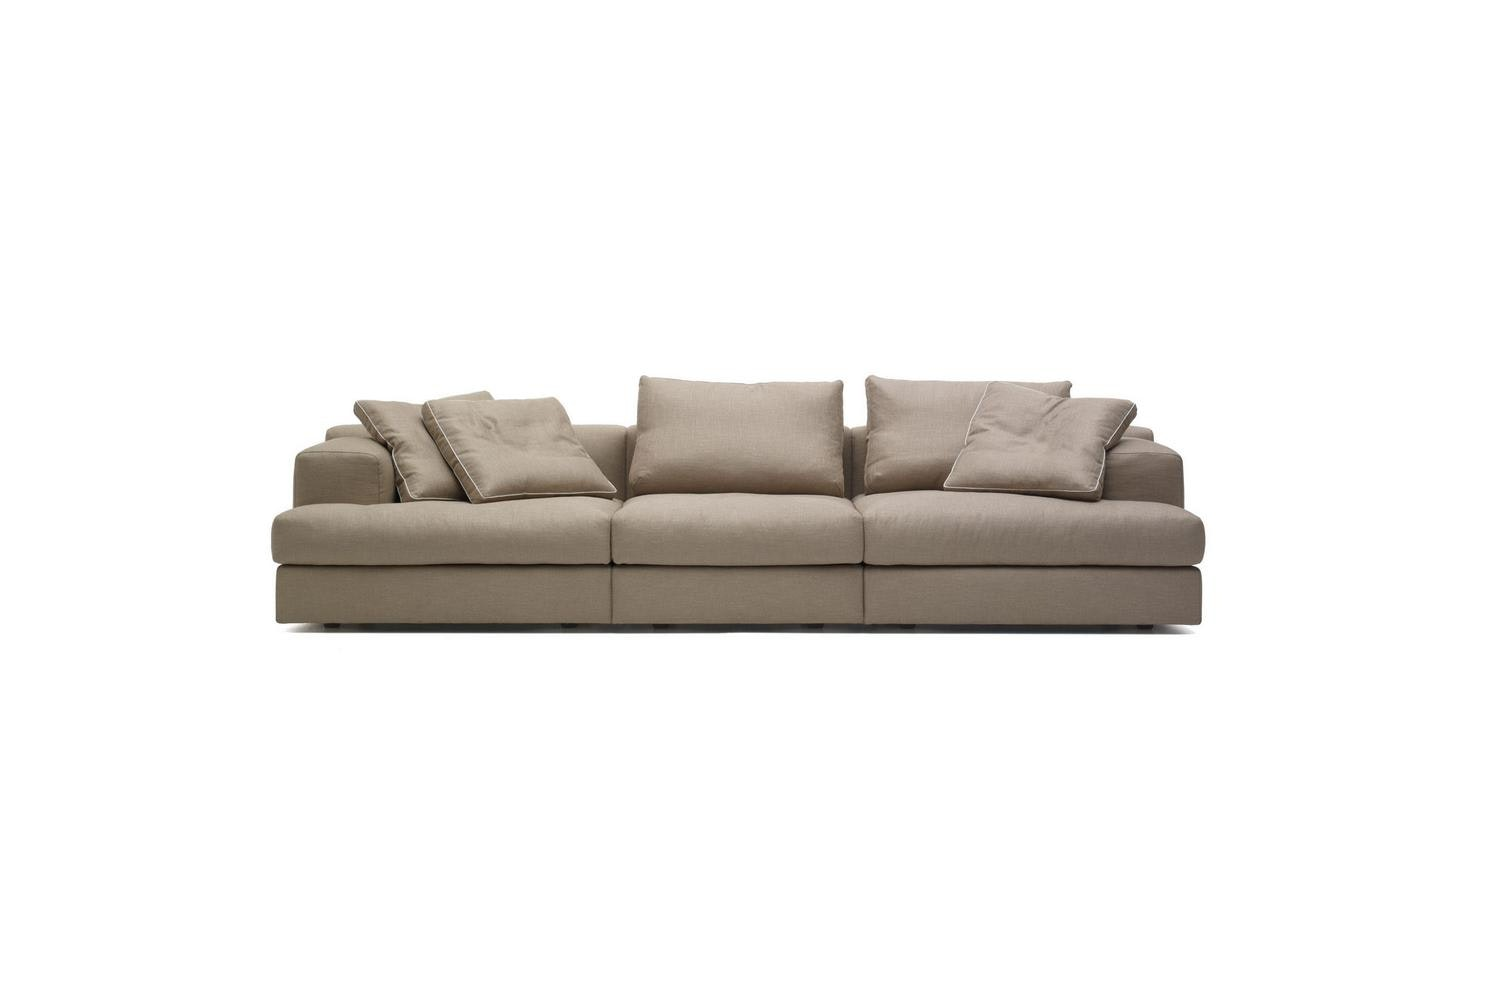 192-193 Miloe Sofa by Piero Lissoni for Cassina